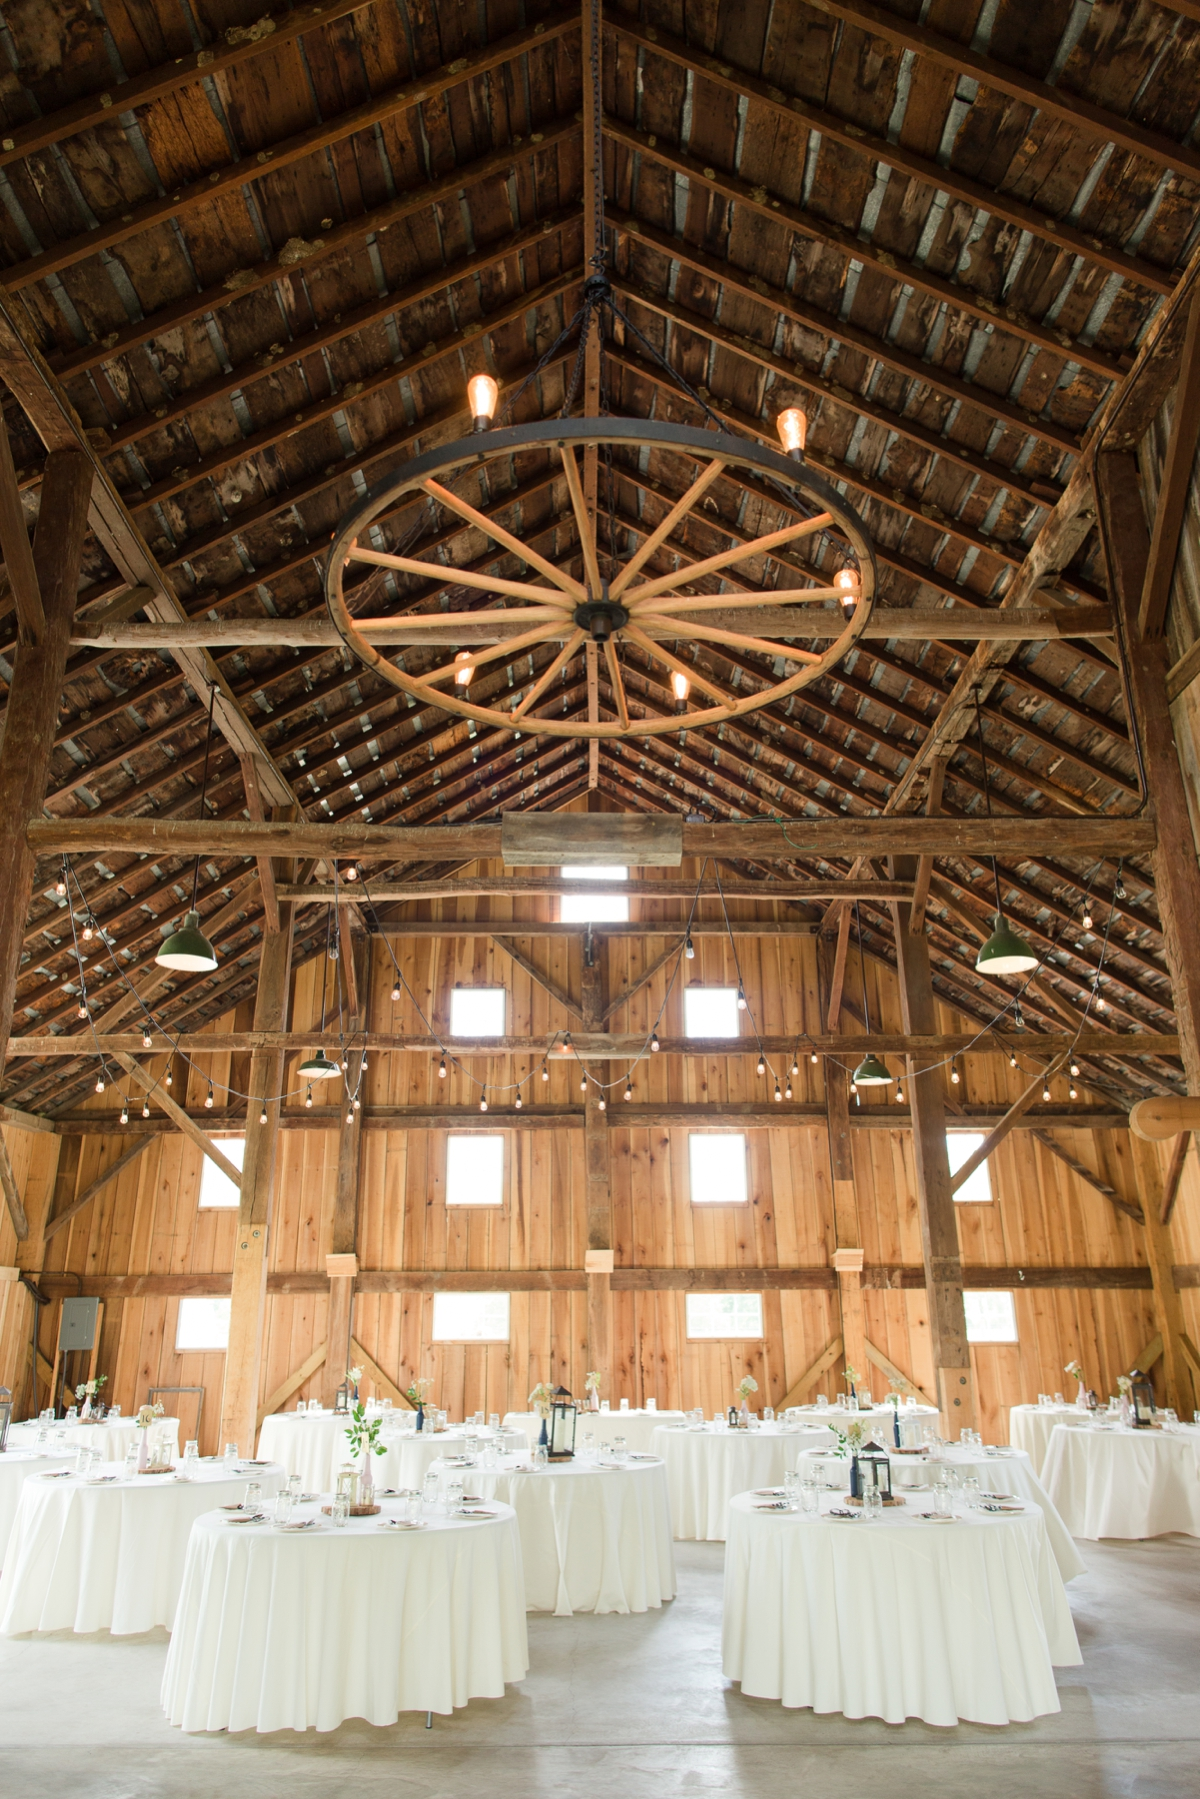 Big Spring Farm Barn Wedding photos barn venue_1914